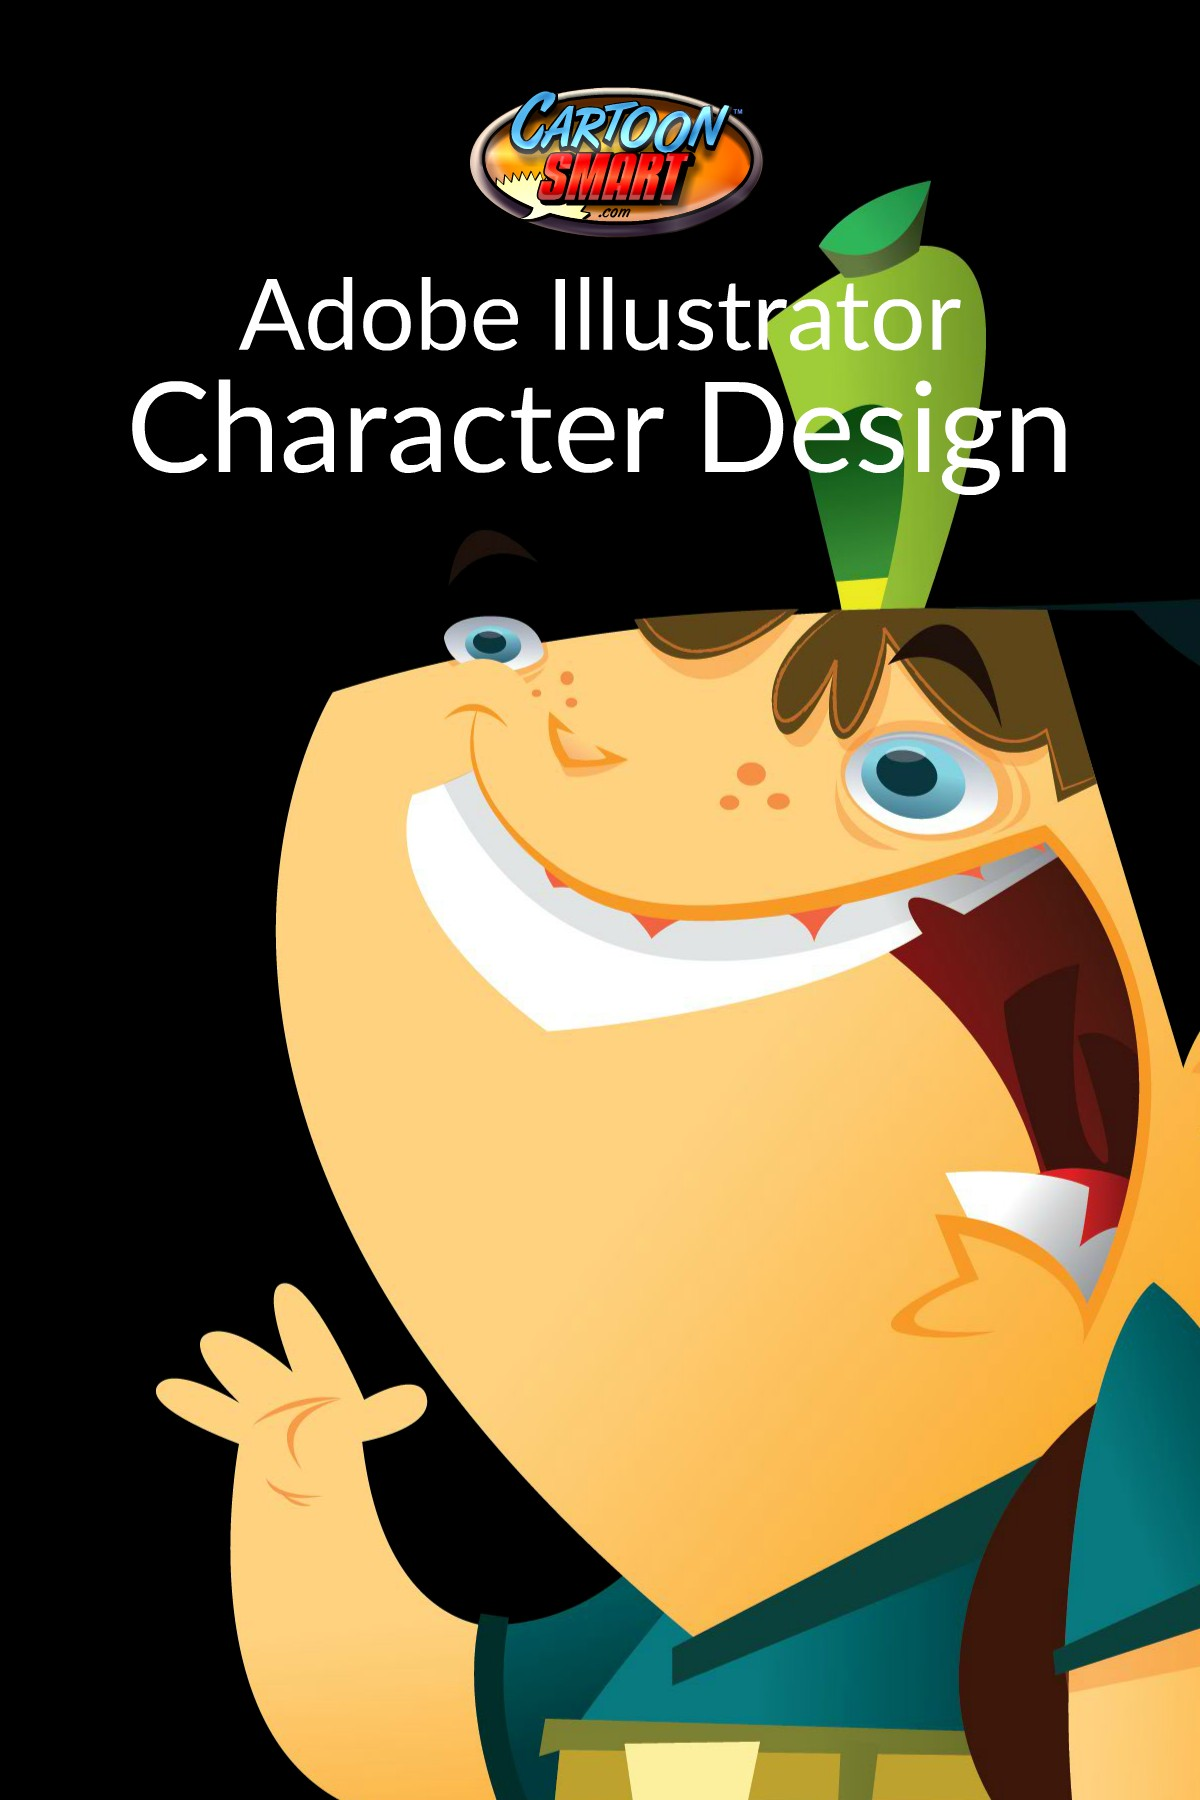 Cartoonsmart Character Design Illustrator : Adobe illustrator character design subscriber access